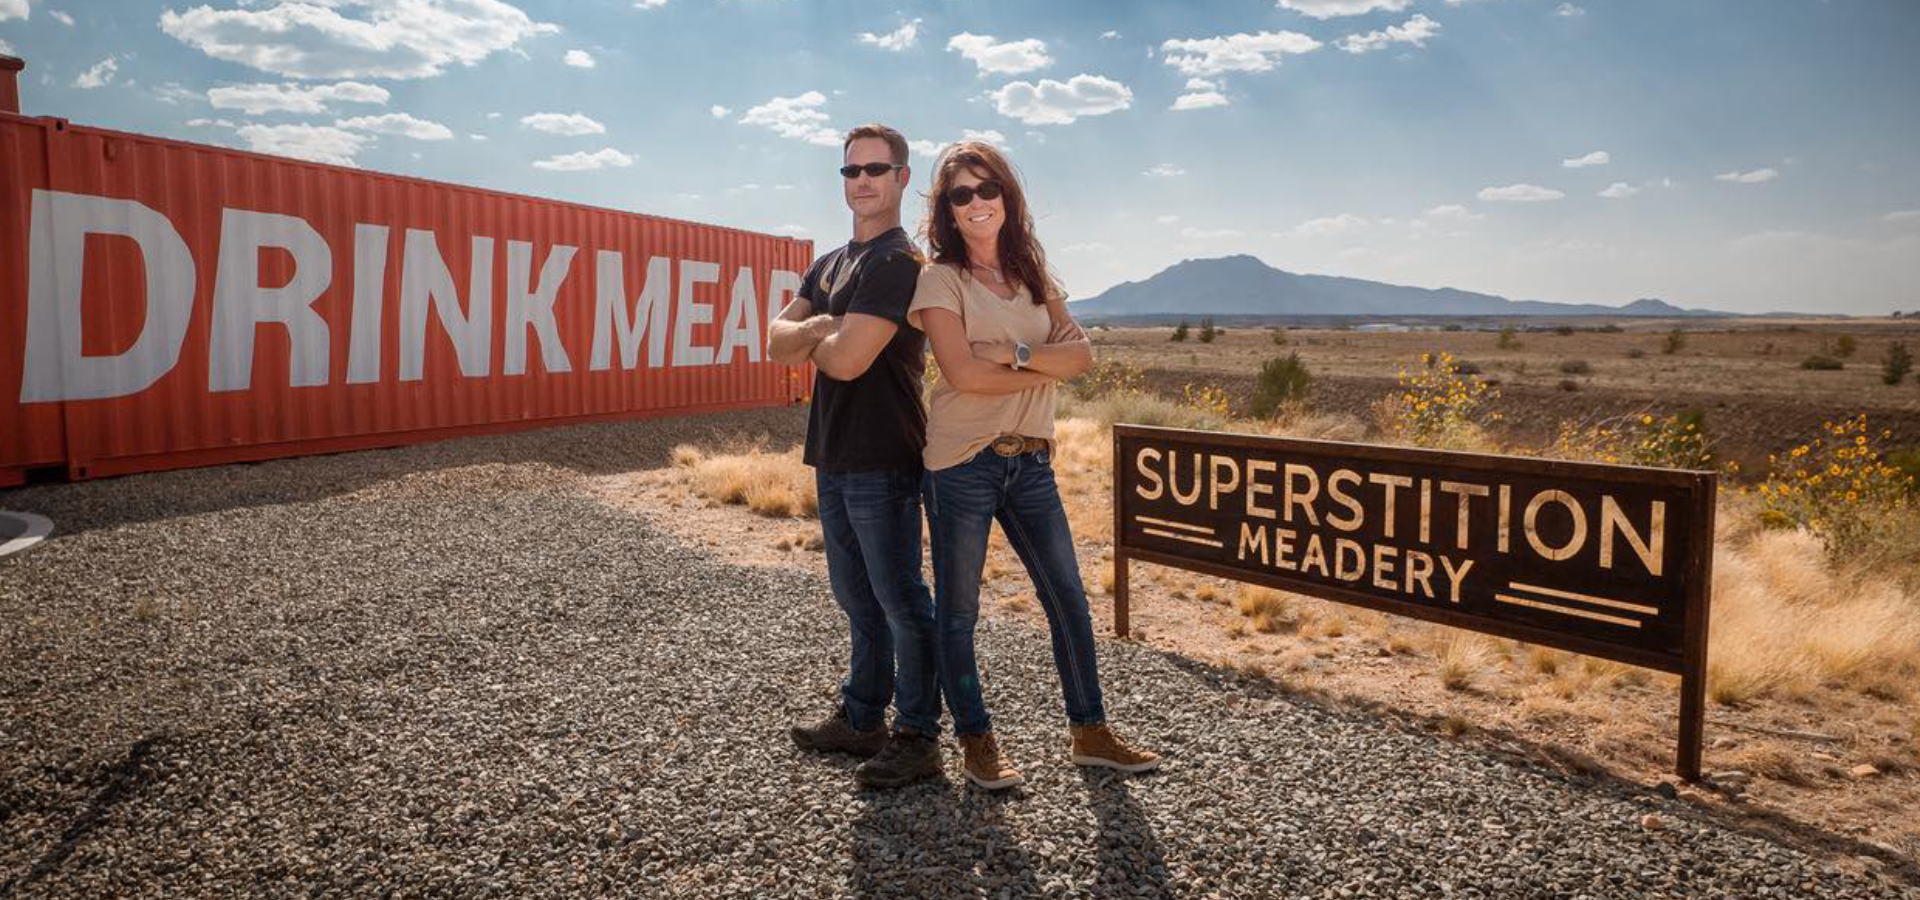 Superstition Meadery Teams up with Hensley Beverage Company for Statewide Distribution in Arizona